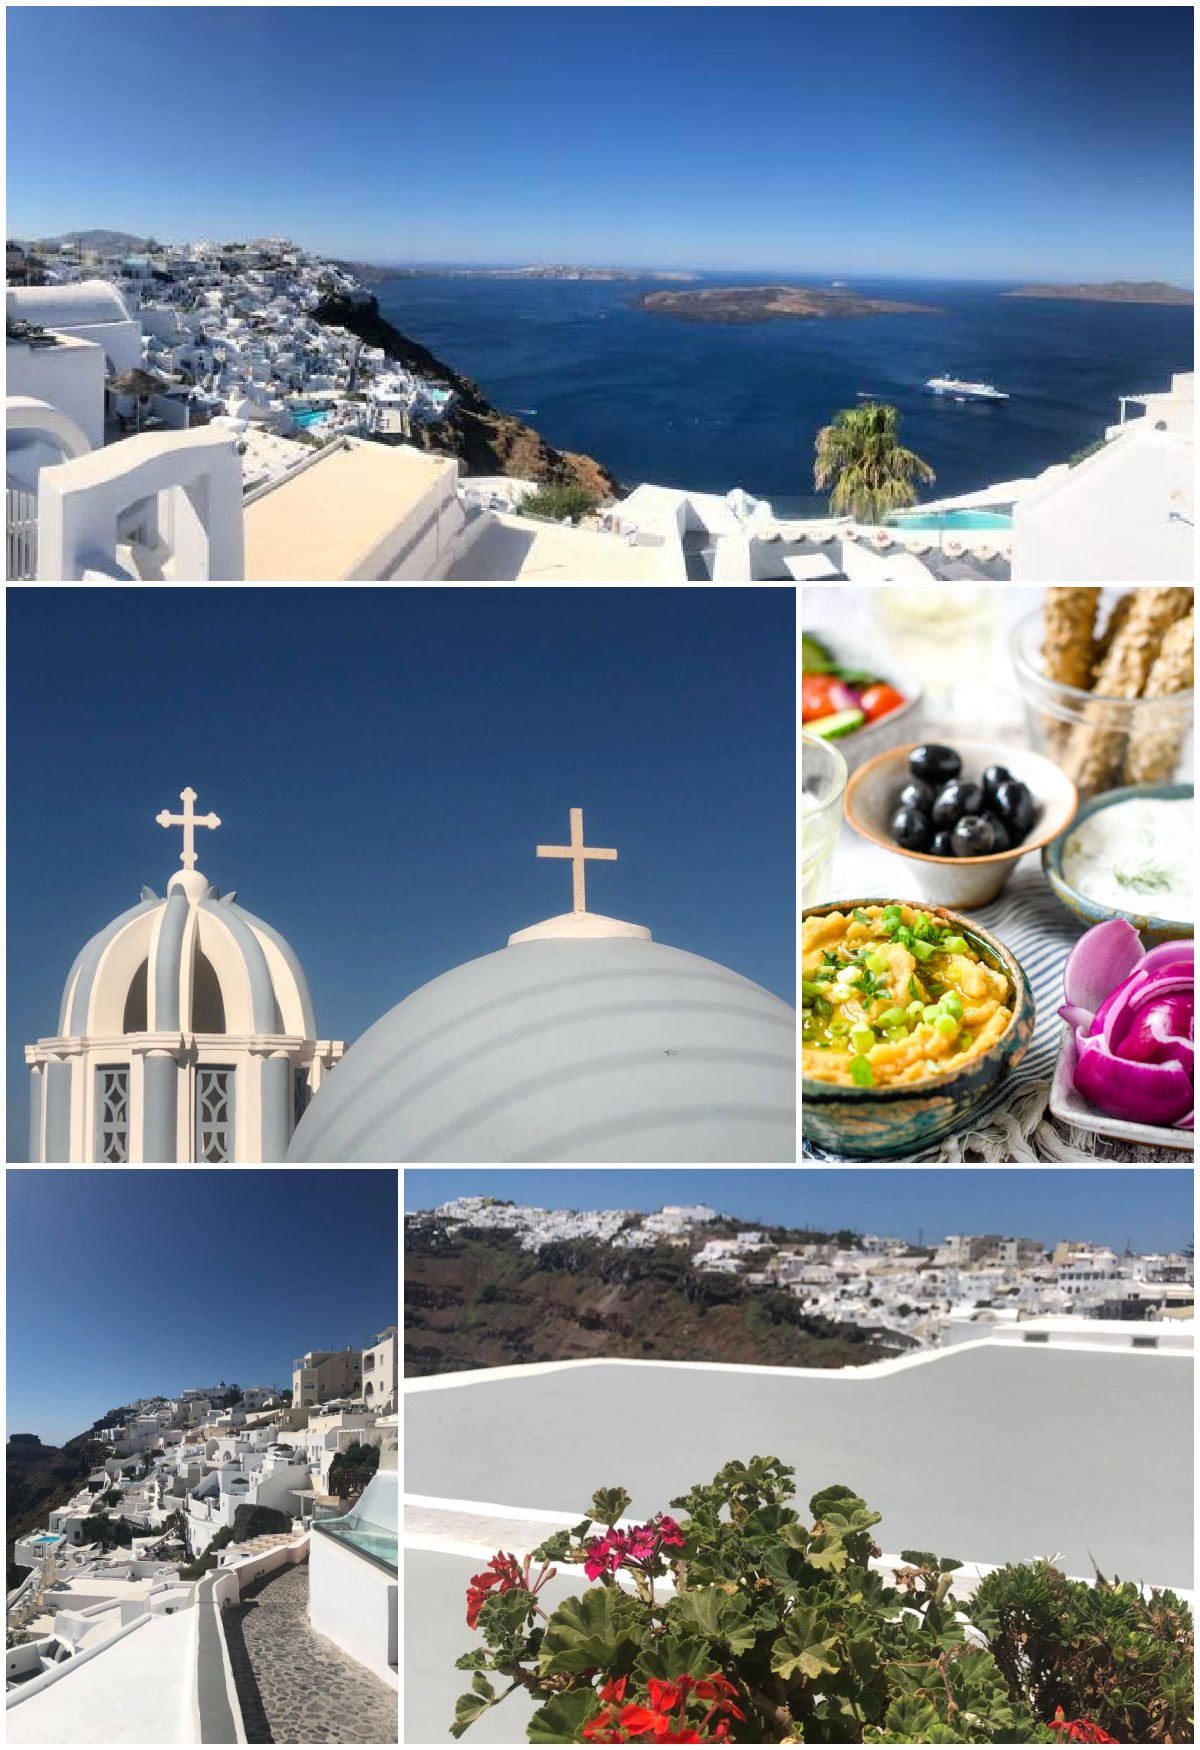 photos of Santorini and one of the fava as part of a mezze